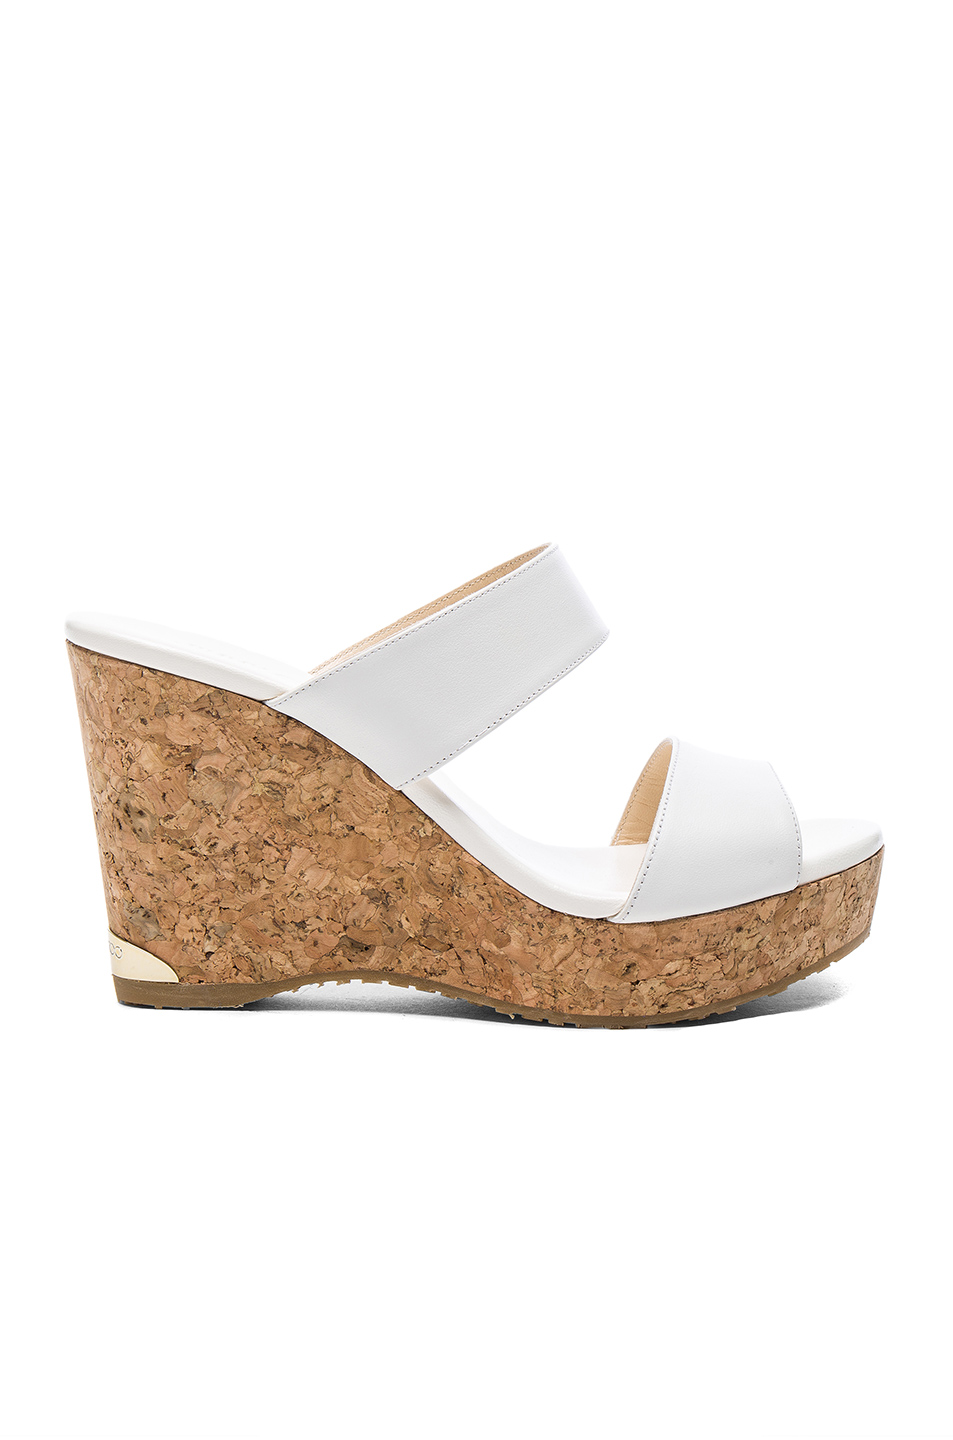 JIMMY CHOO Parker Wedge Sandals in White